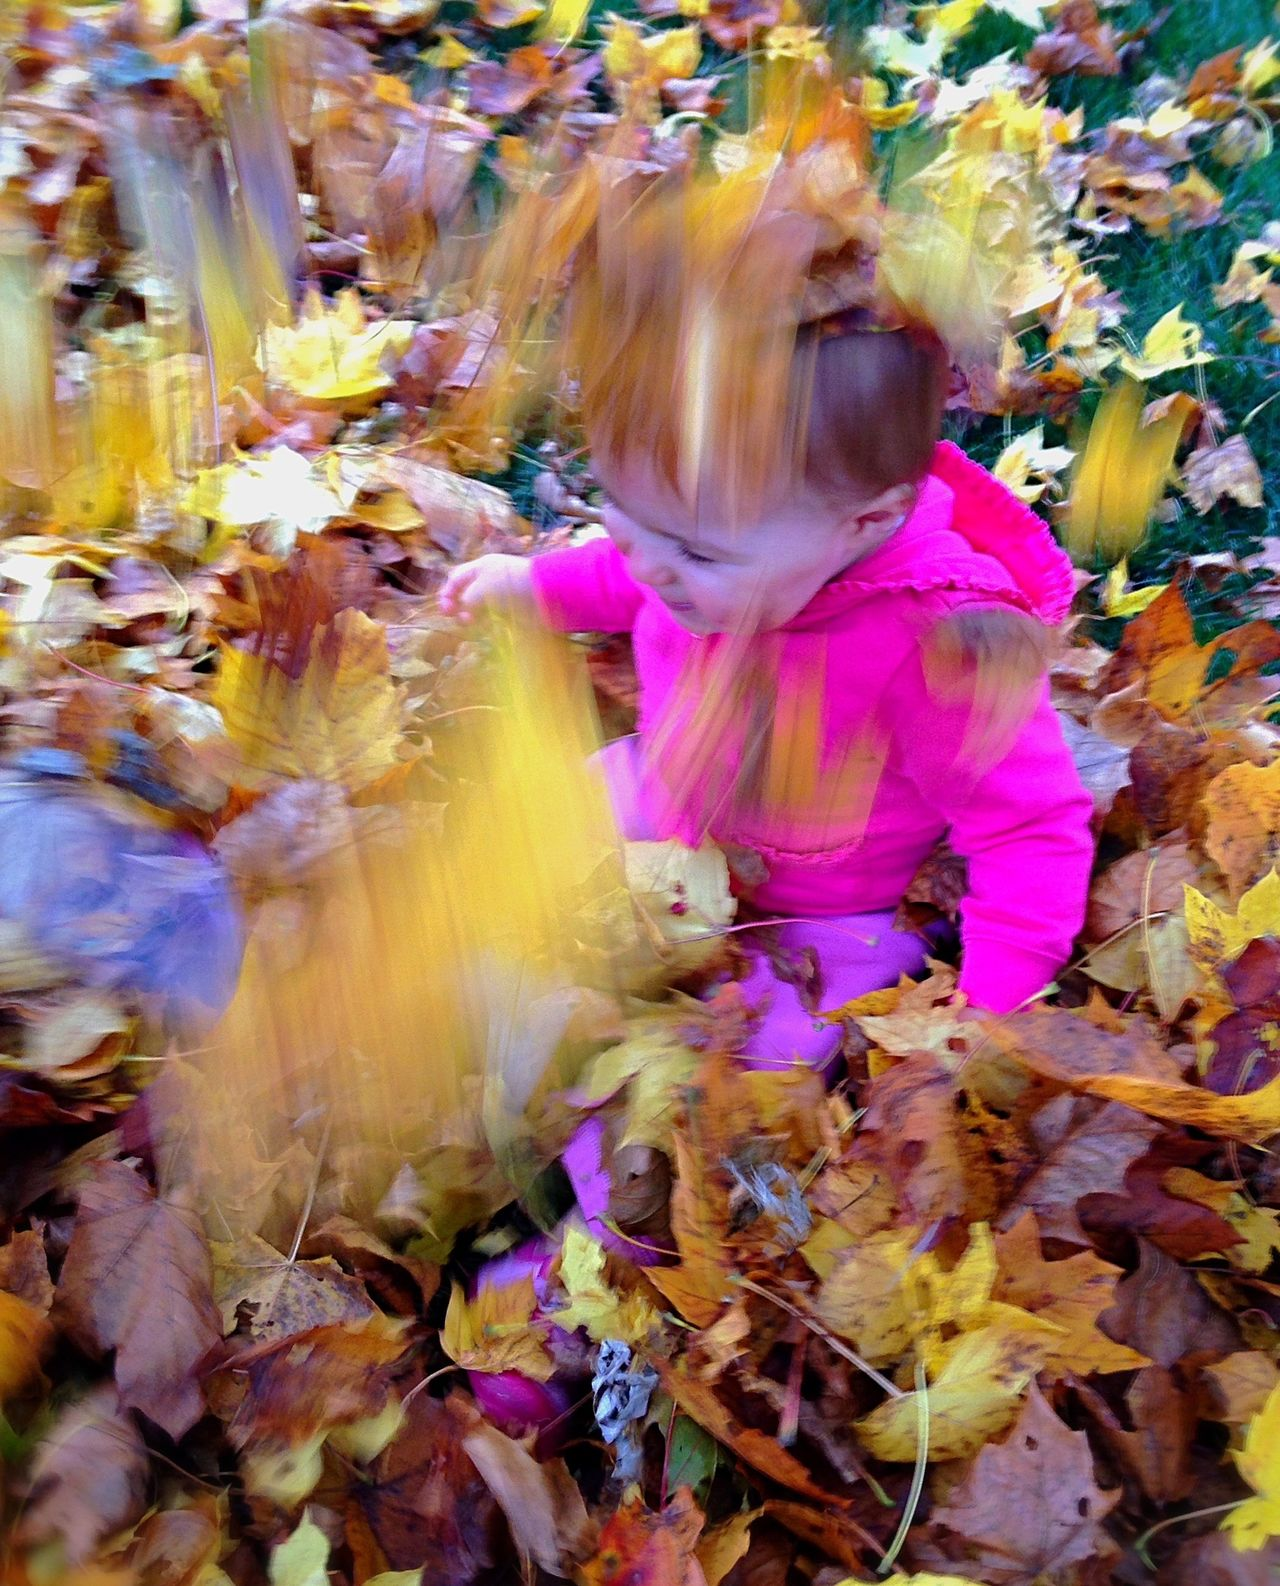 Original Experiences my niece and her first time playing in the leaves. At first, she did not like it, but after a bit she was having fun. Baby Girl Playing In The Leaves Play Happy Falling Leaves New England  Rhode Island North Kingston Sweet Joyful Happiness Simple Moment Enjoying Life Taking Photos Perfect Enjoy The New Normal